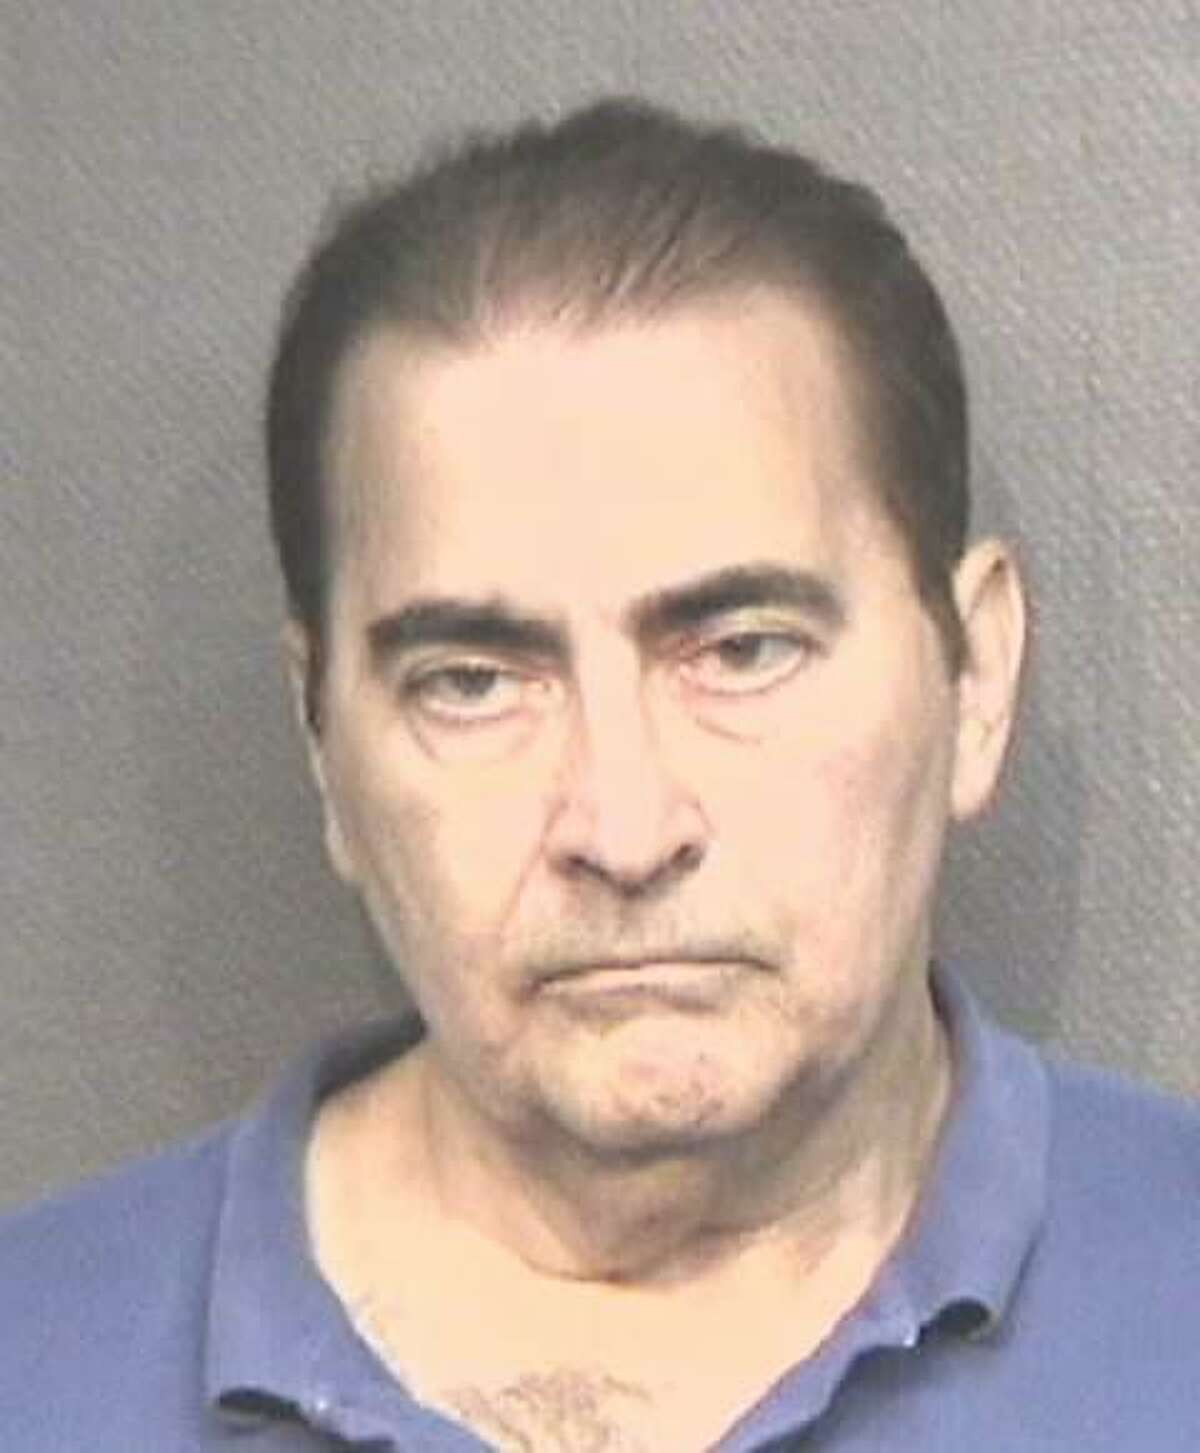 Houston attorney Philip Herbert Azar II, 68, is being charged for aggravated assault, a second-degree felony.